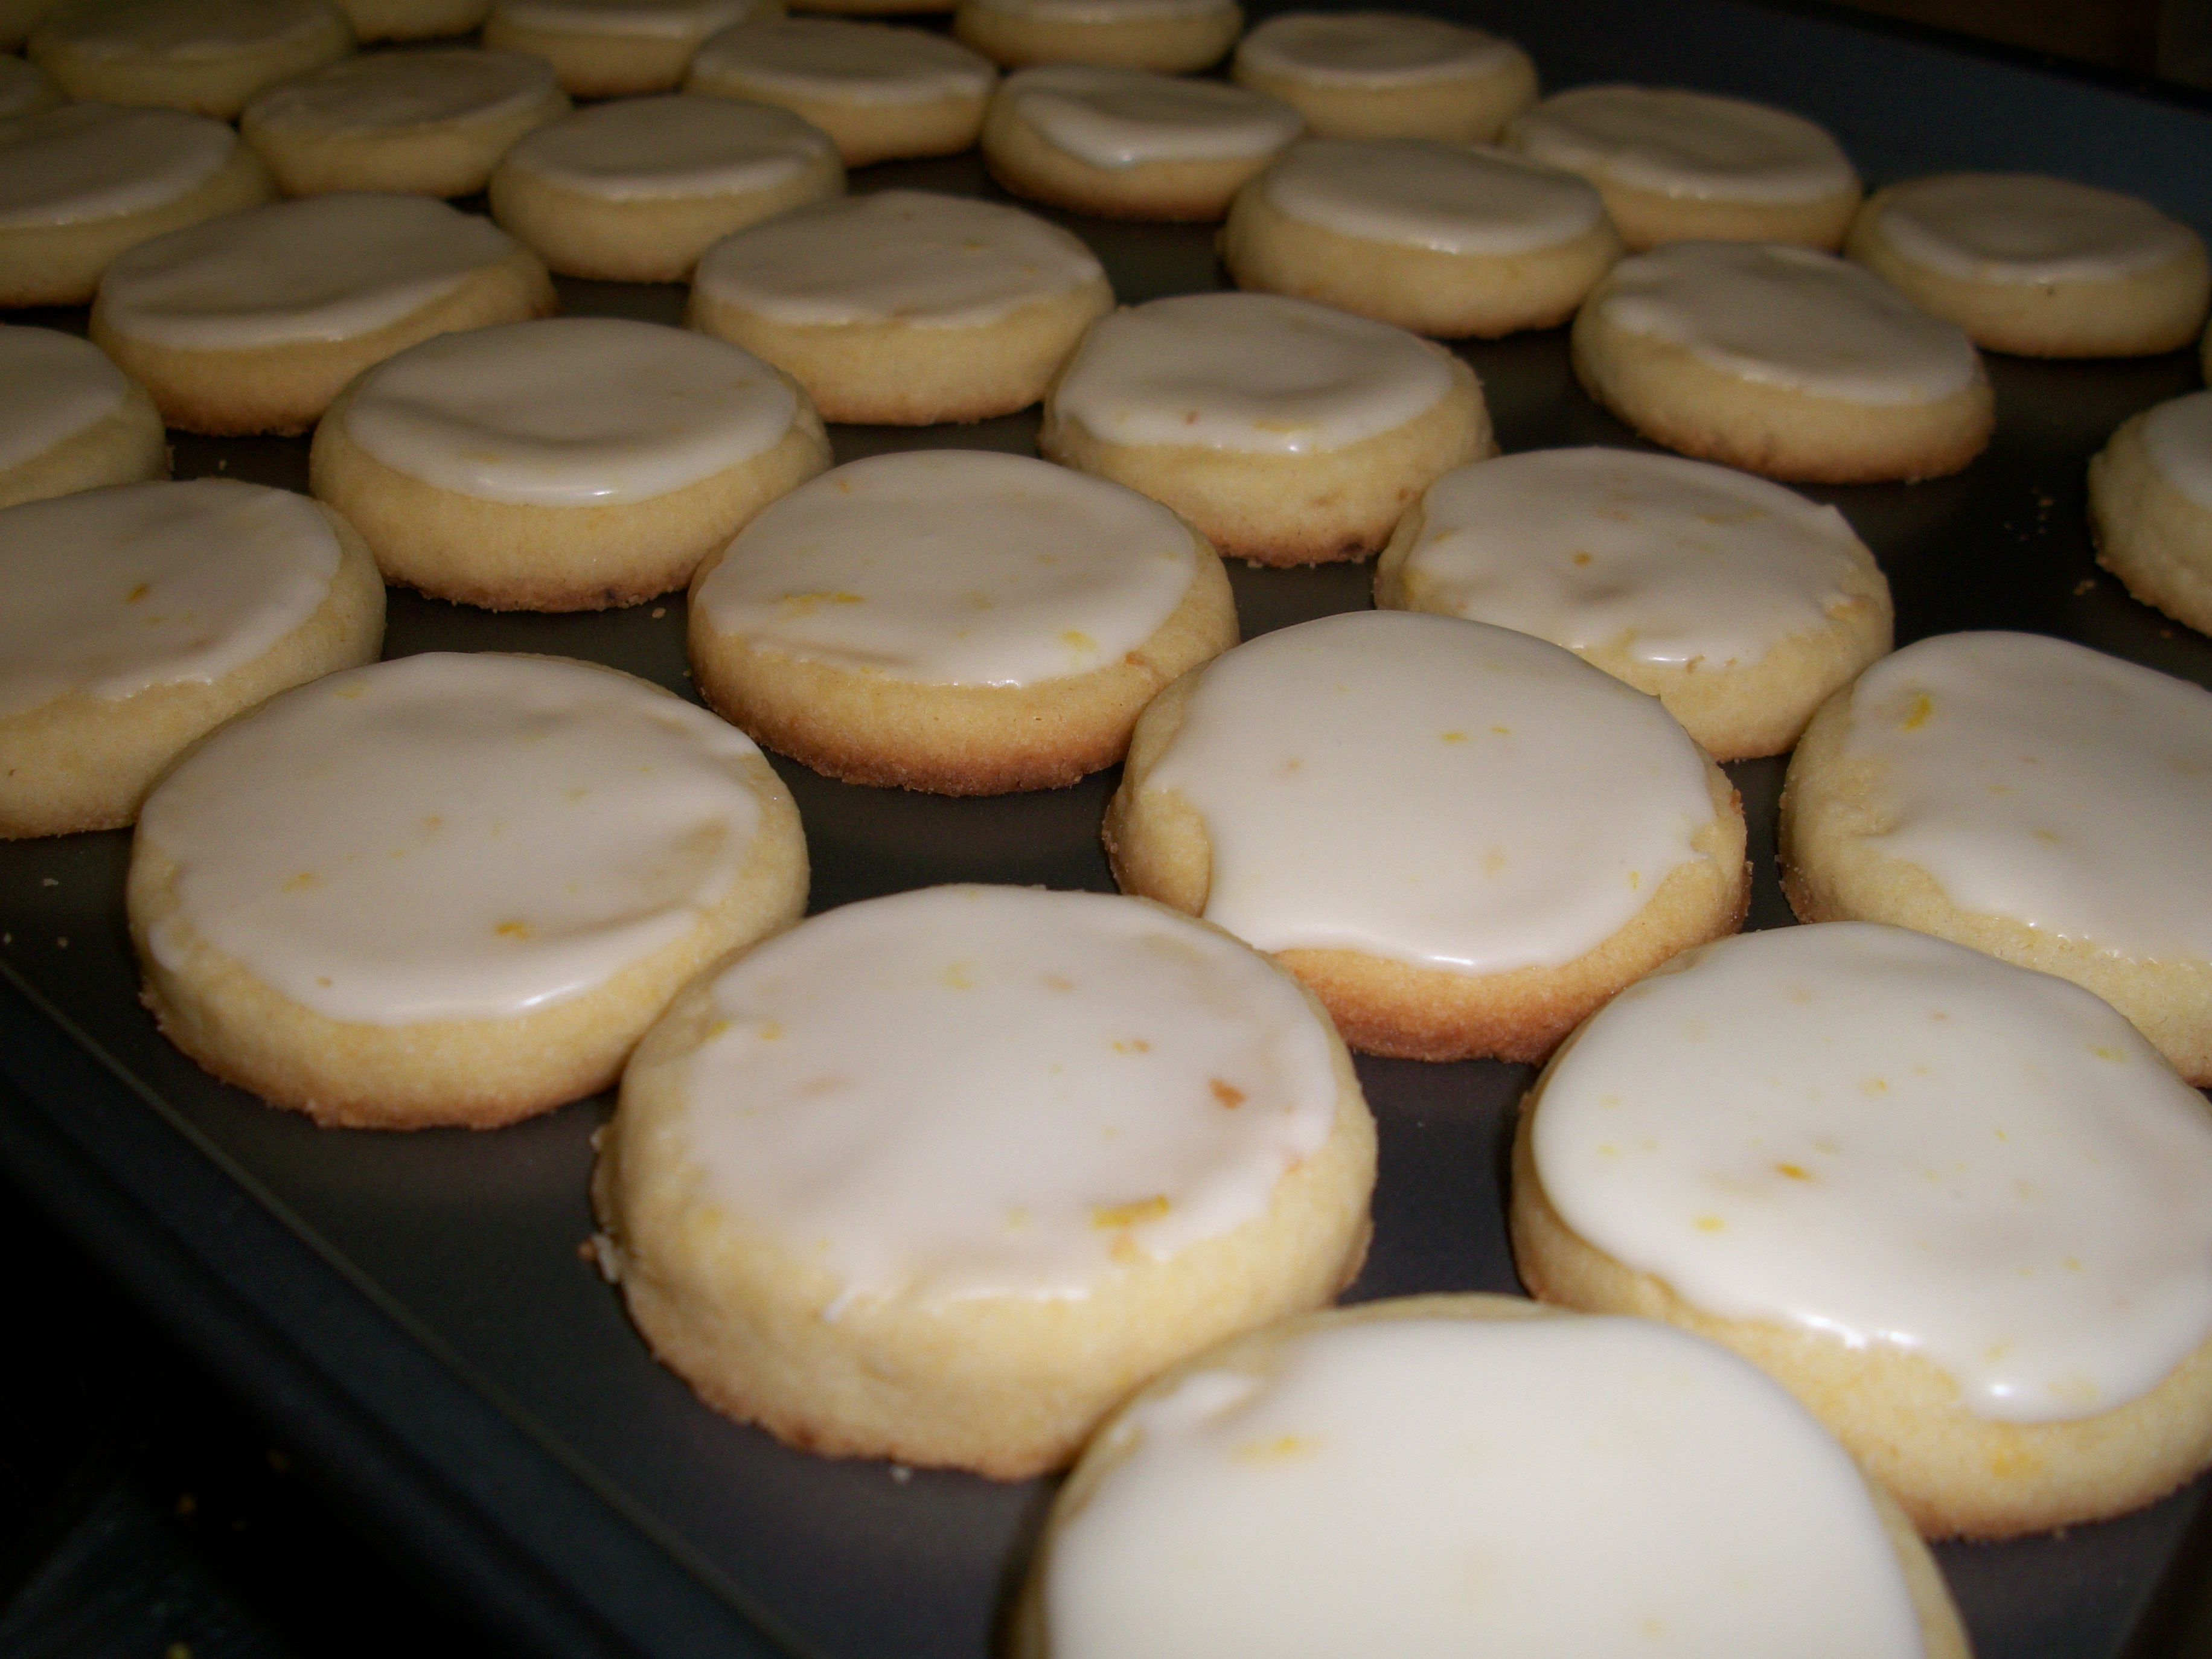 Recipes Course Desserts Cookies and Bars Lemon Shortbread Cookies From ...